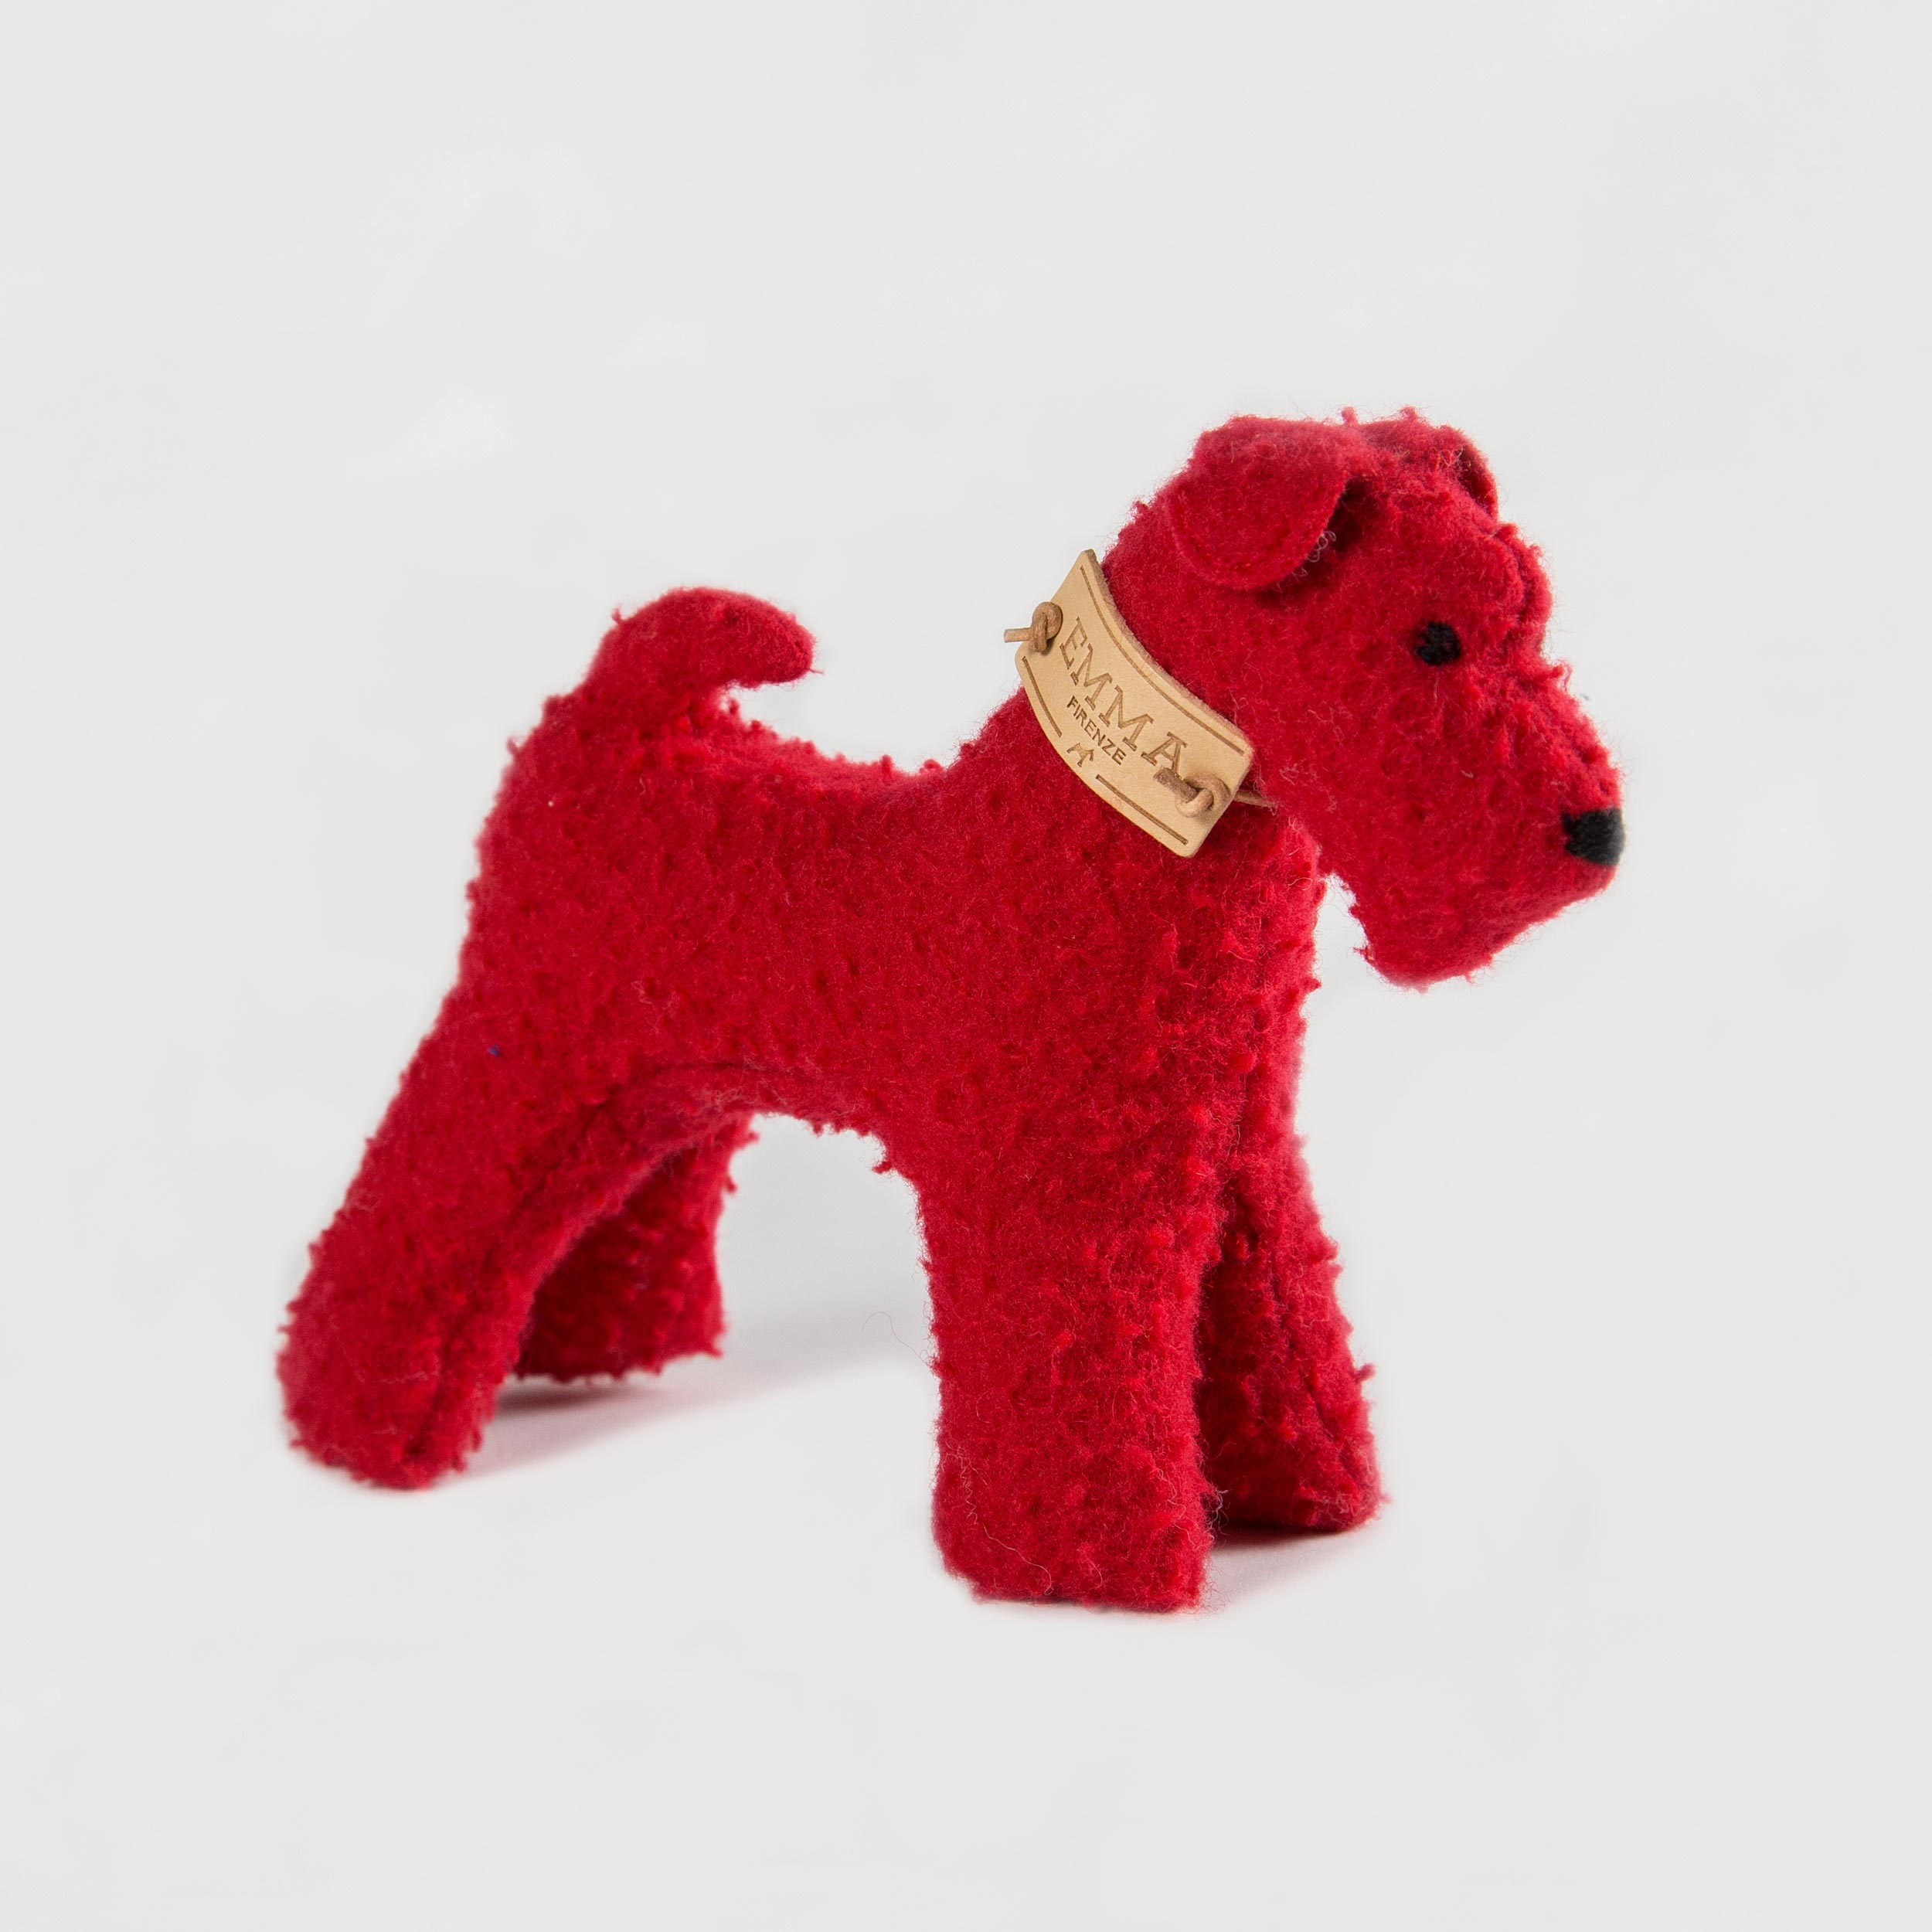 gift toy in red casentino fabric